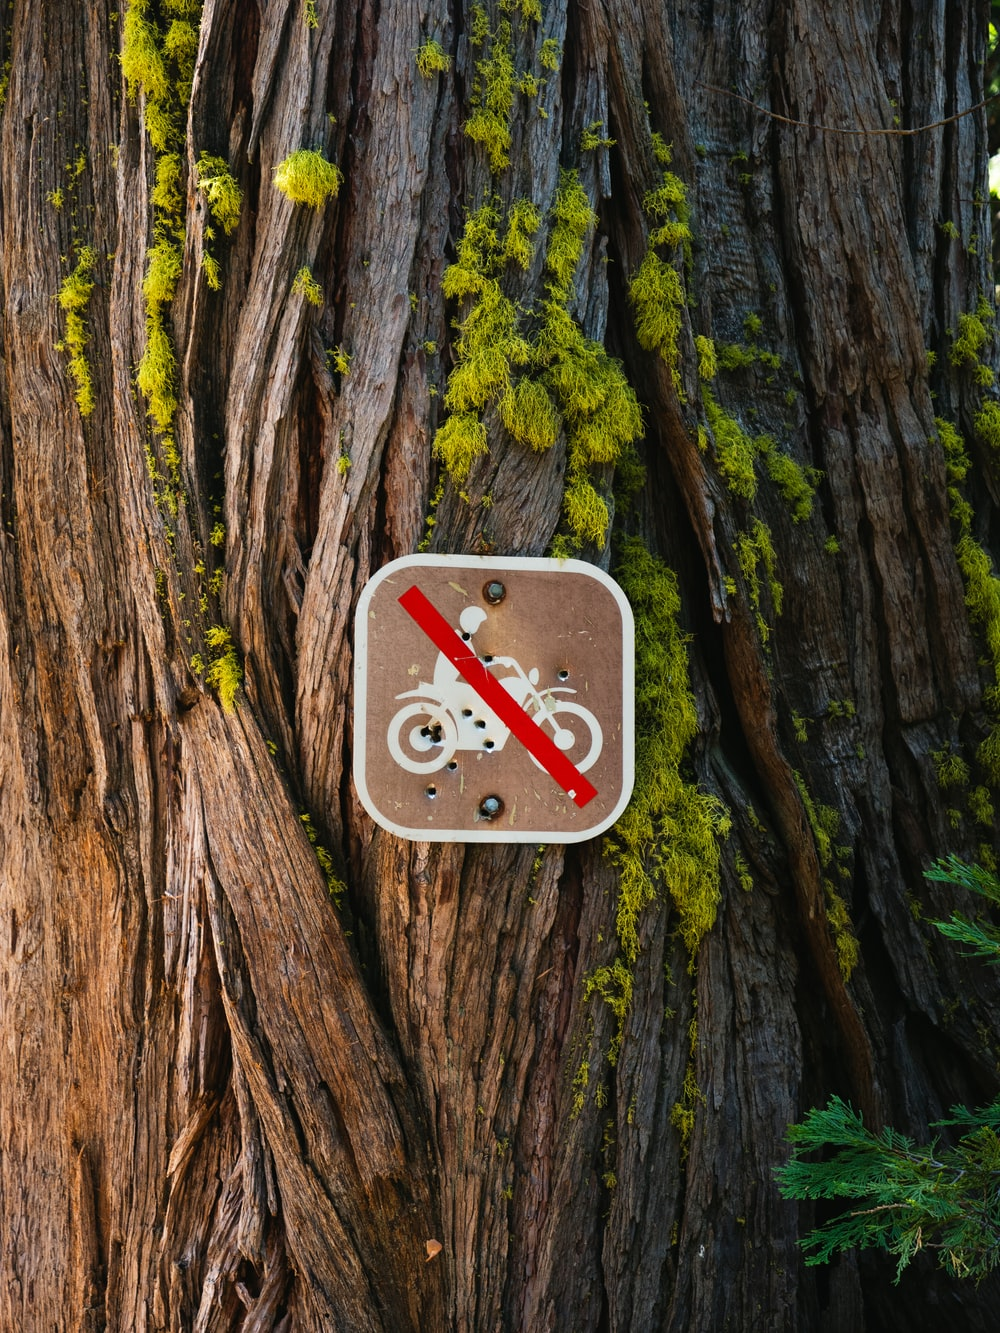 no riding of motorcycle sign on tree trunk